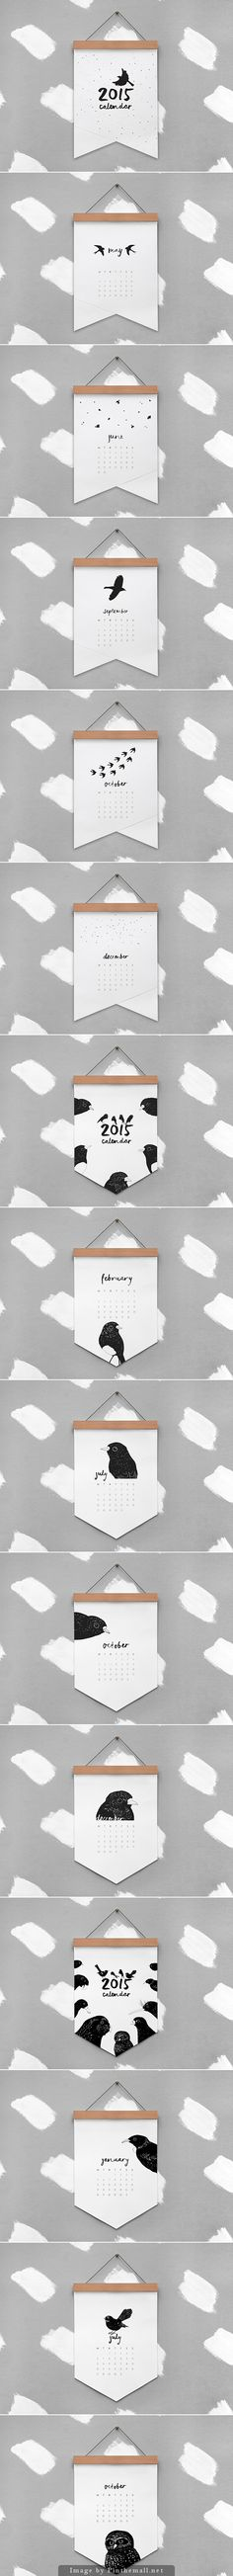 2015 #calendar by melissa boardman with cute bird illustrations                                                                                                                                                                                 More